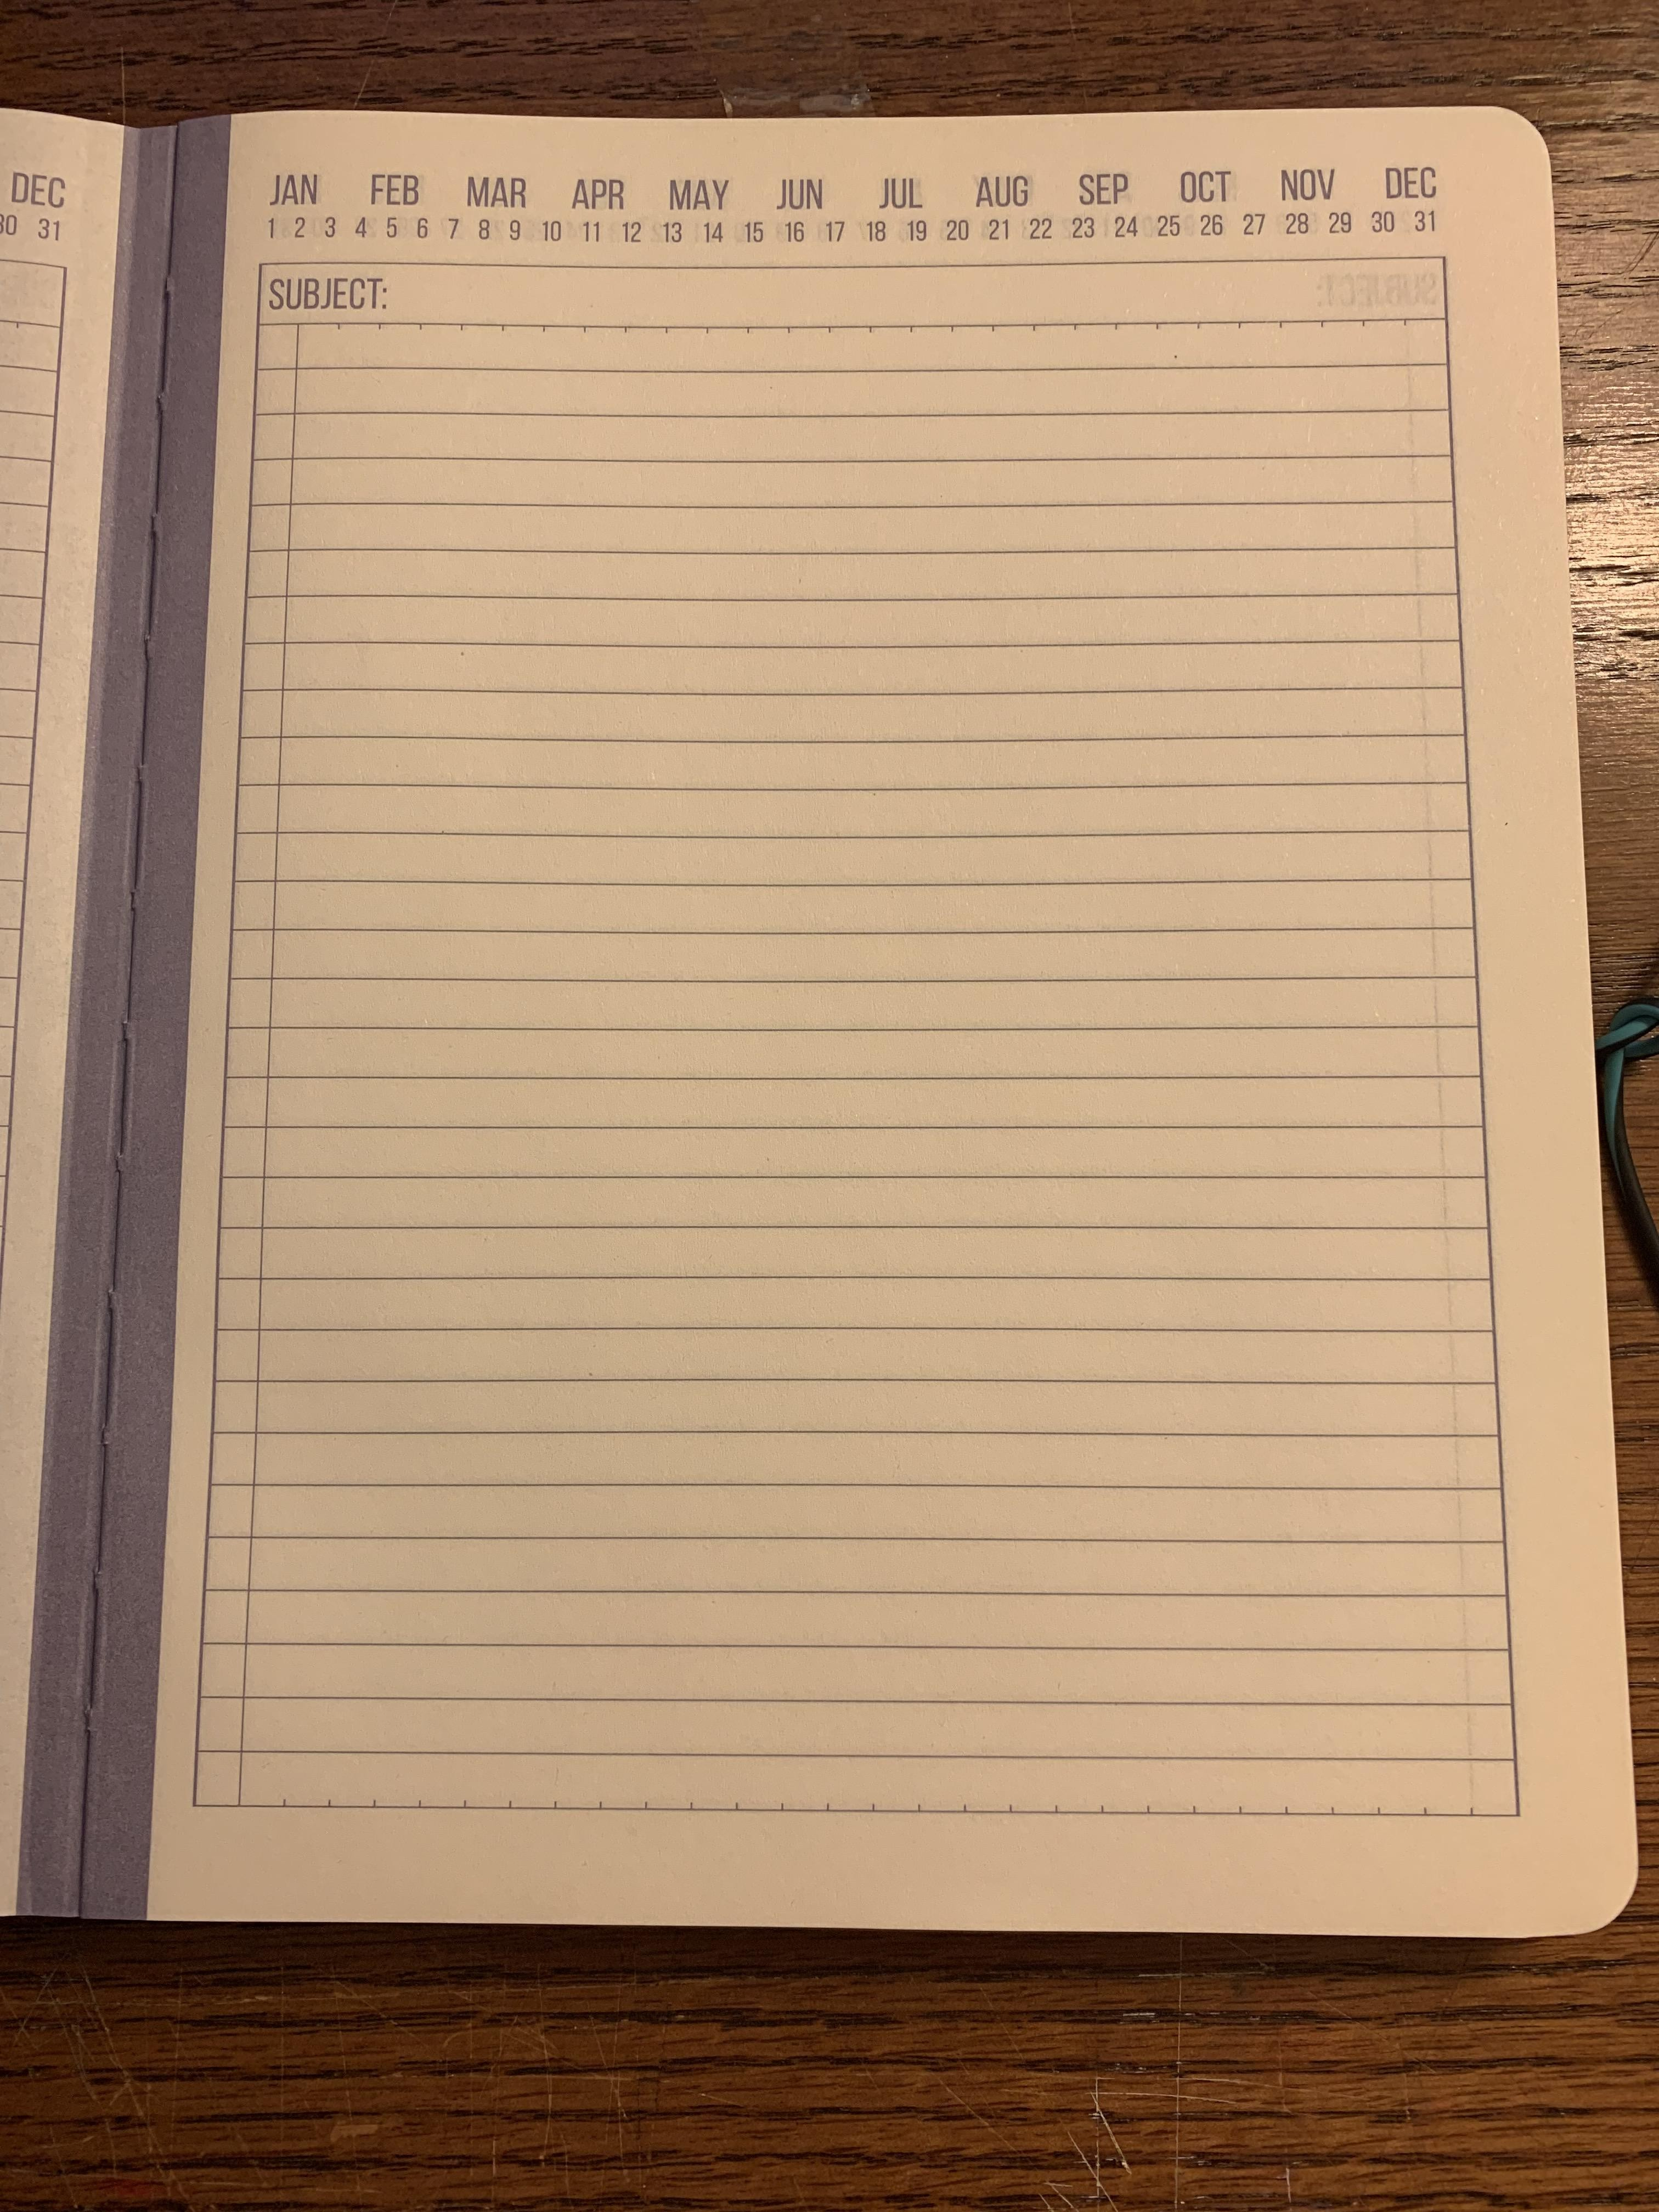 Can I make this journal into a BuJo Question idd